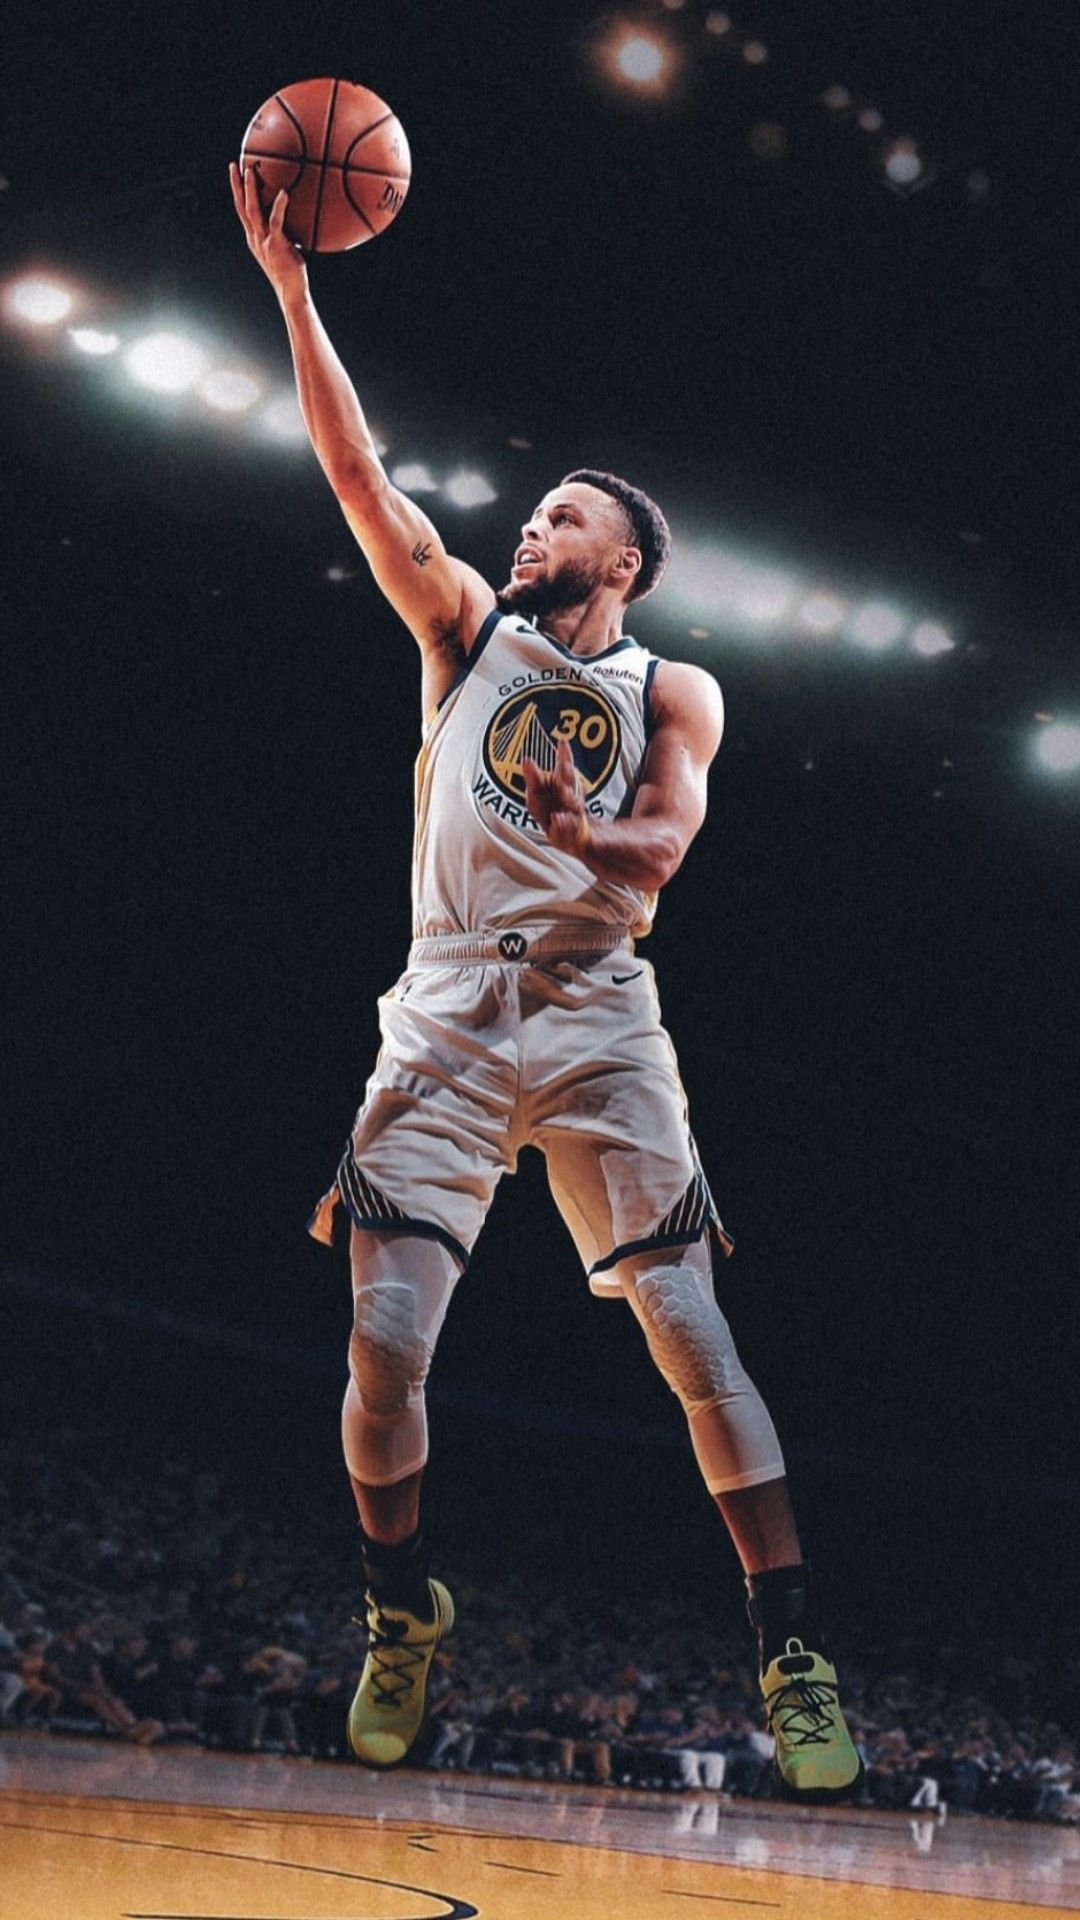 Pin By Sherry Drais On Bowie1 Hey Steph Curry Stephen Curry Wallpaper Curry Wallpaper Nba Stephen Curry